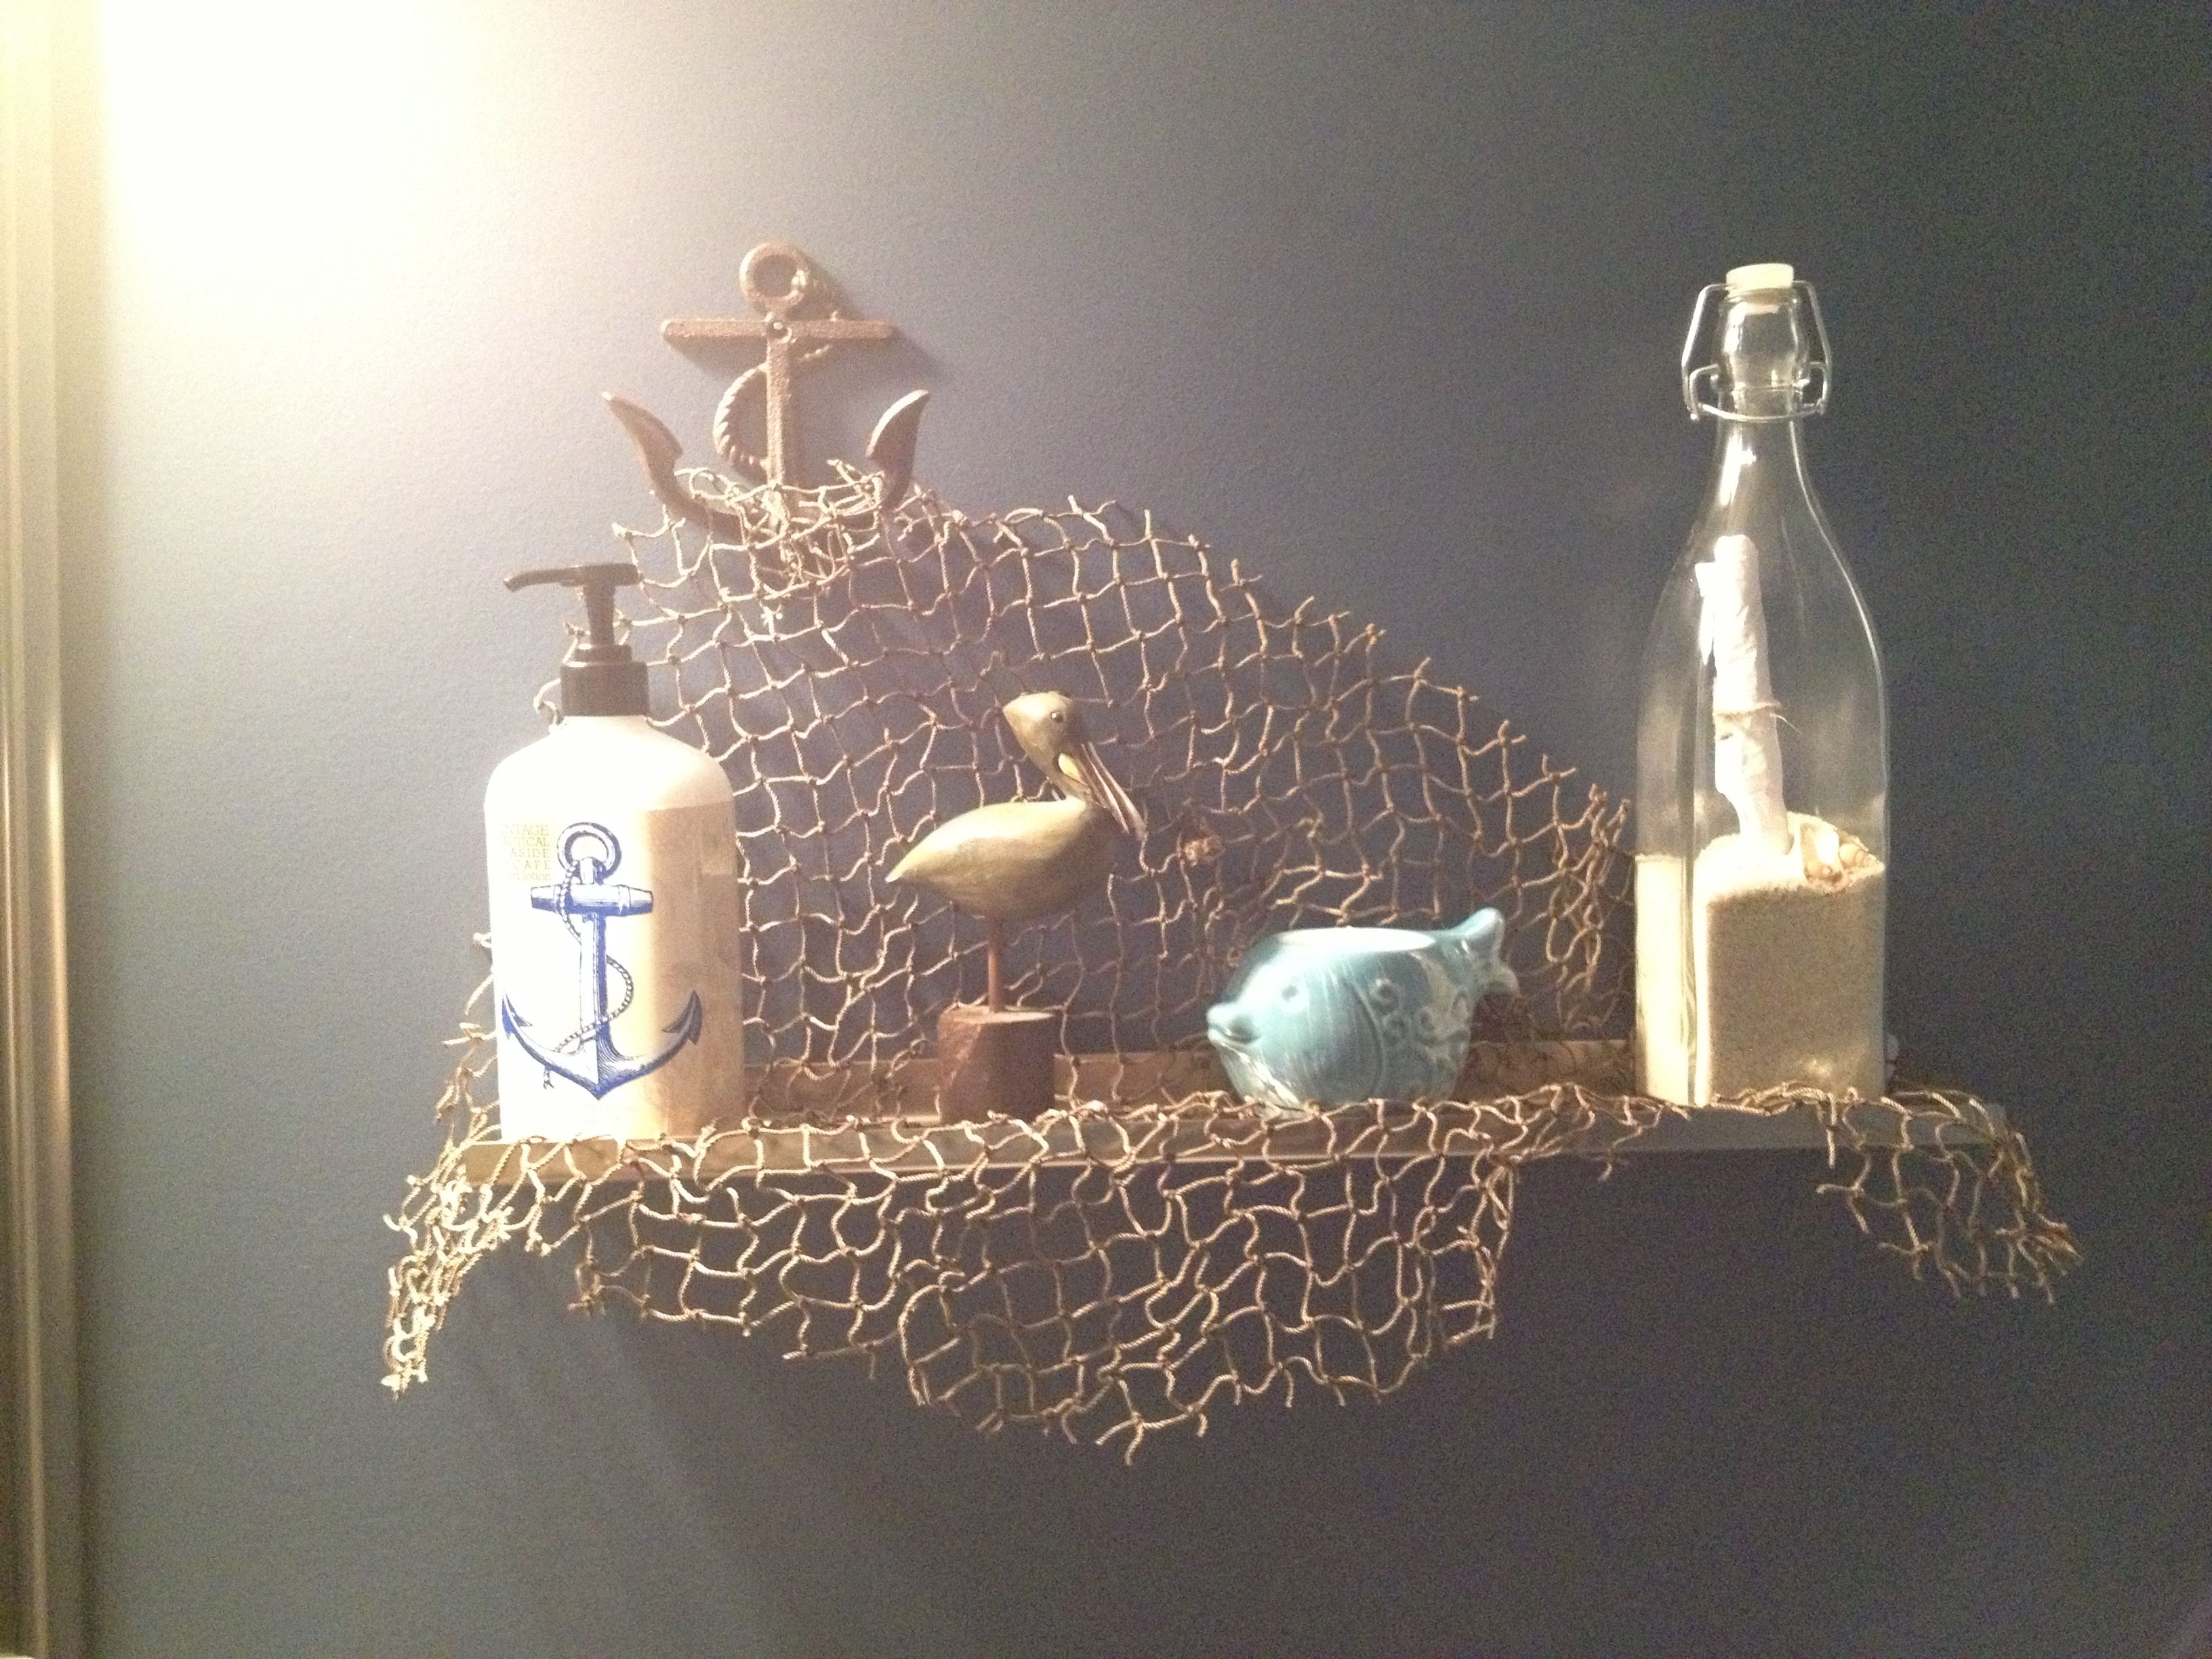 85 Ideas About Nautical Bathroom Decor: Cute Shelf Decor For A Nautical Bathroom! Make Sure You